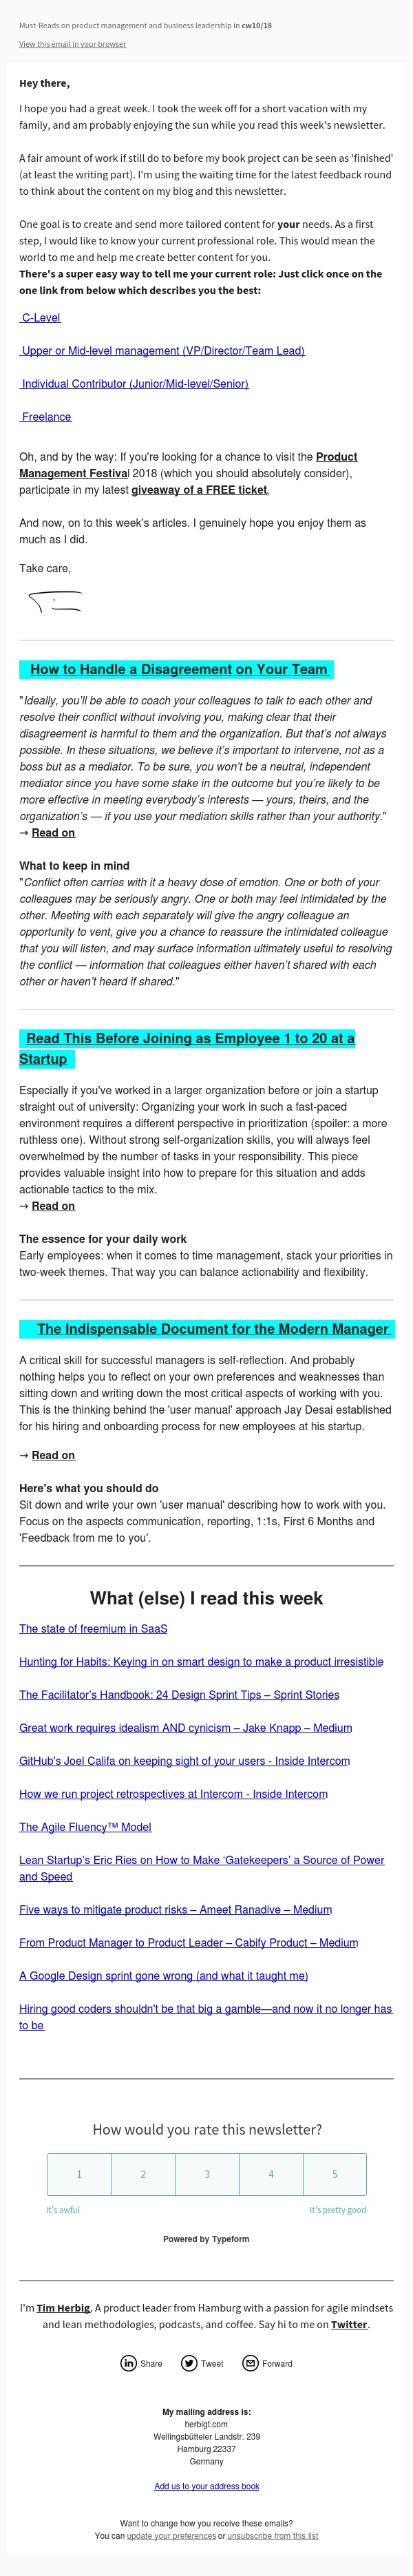 How to Handle a Disagreement on Your Team & The Indispensable Document for the Modern Manager